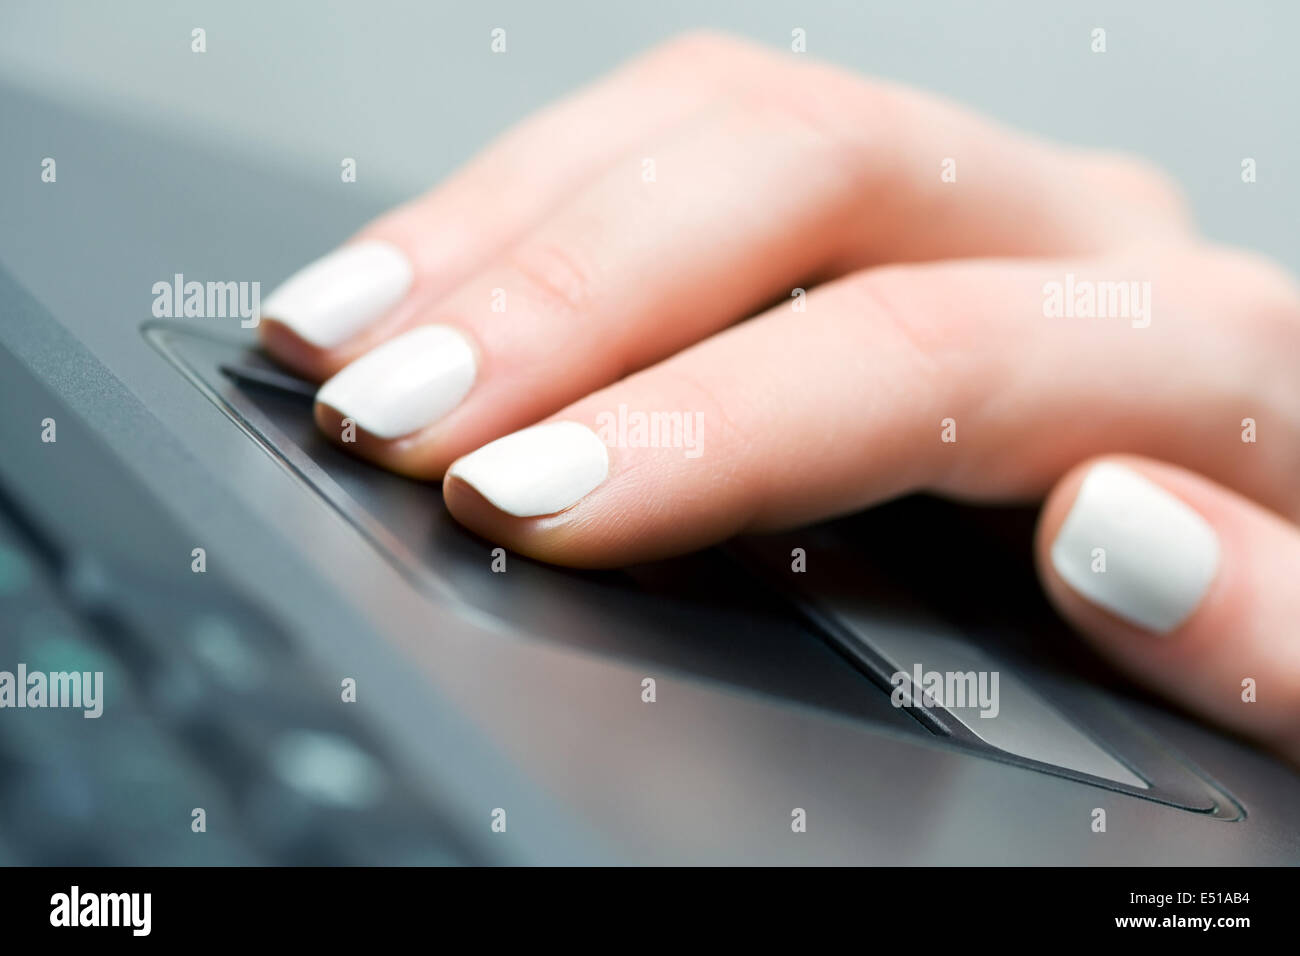 Female hand using touchpad - Stock Image